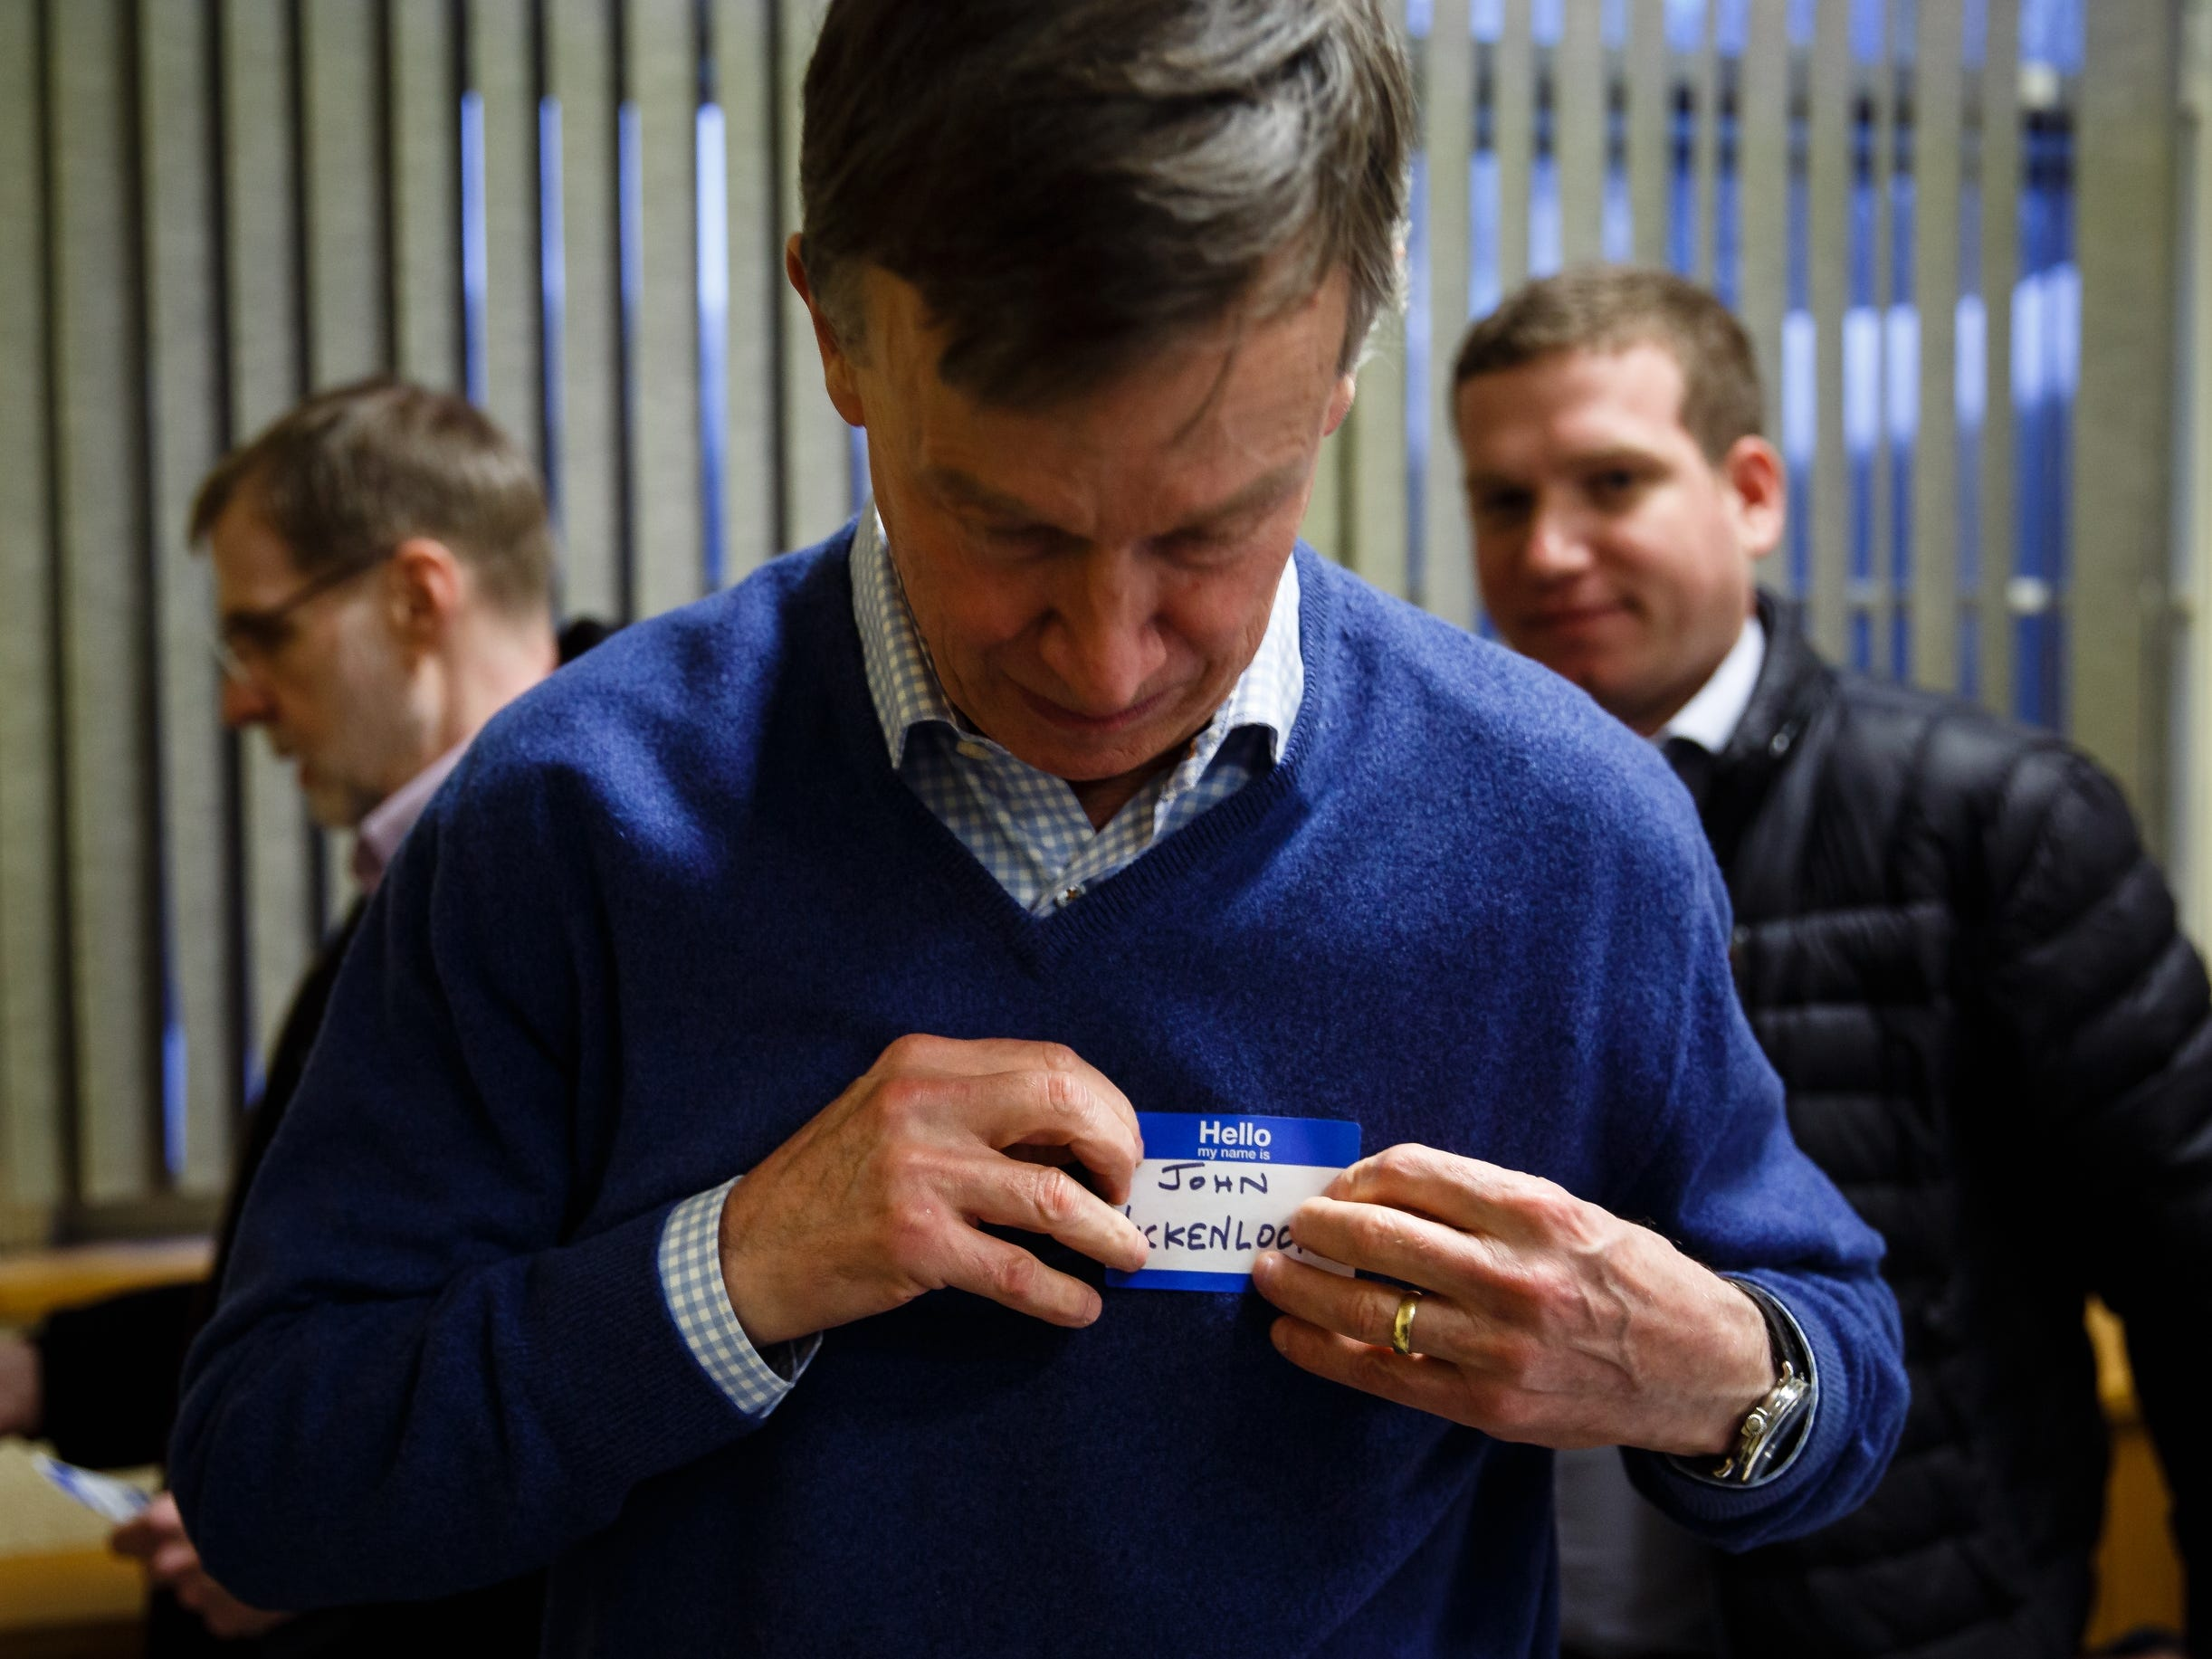 Former Governor of Colorado John Hickenlooper puts on a name tag as he walks into the Story County Democrats: Annual Soup Supper Fundraiser on Saturday, Feb. 23, 2019 in Ames.